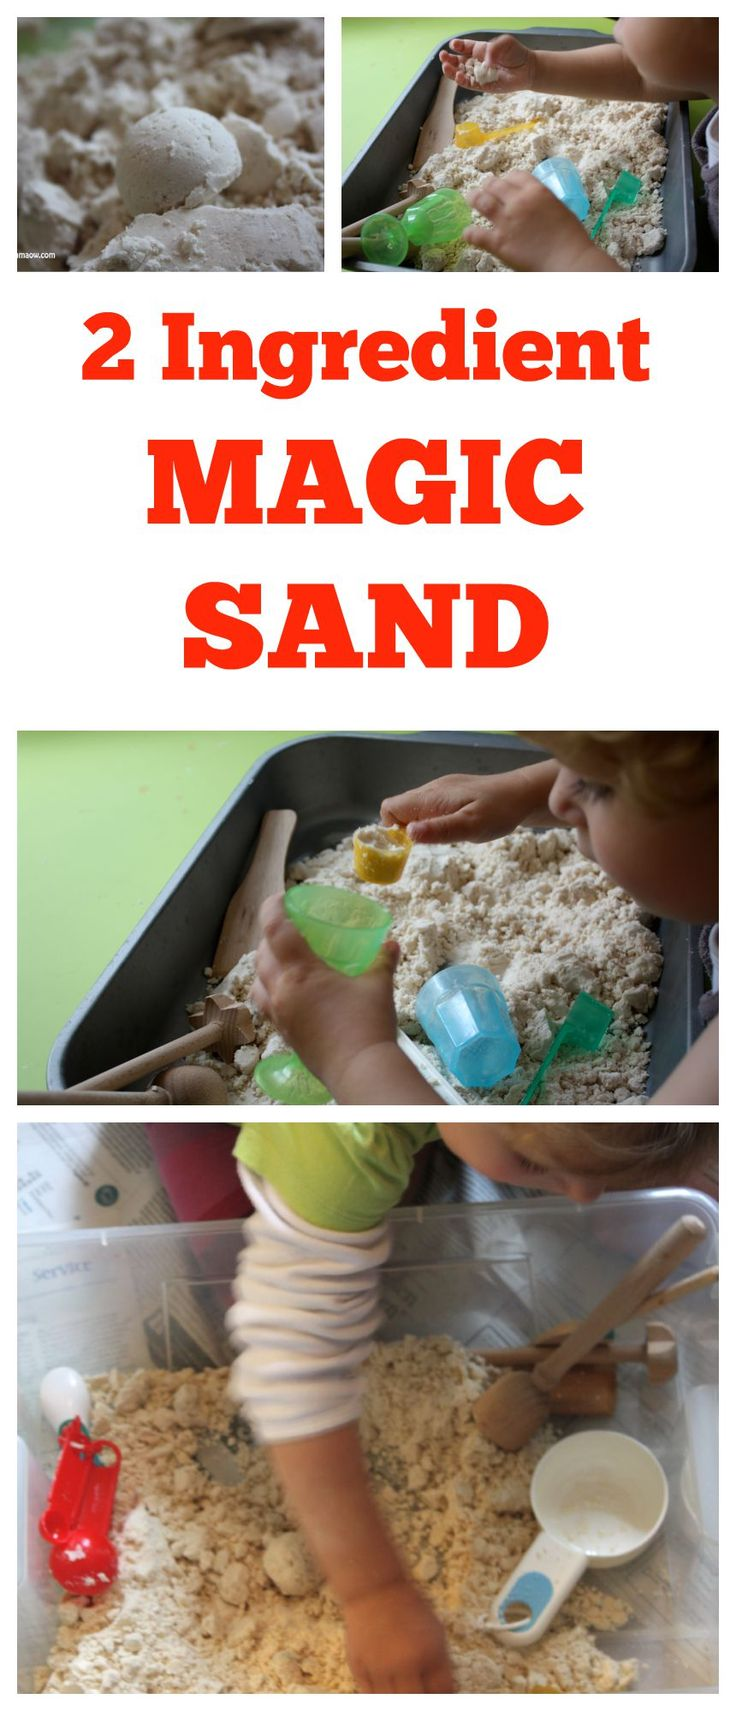 2 Ingredient Magic Sand. Easy and Cheap to make! Wonderful Play Material!